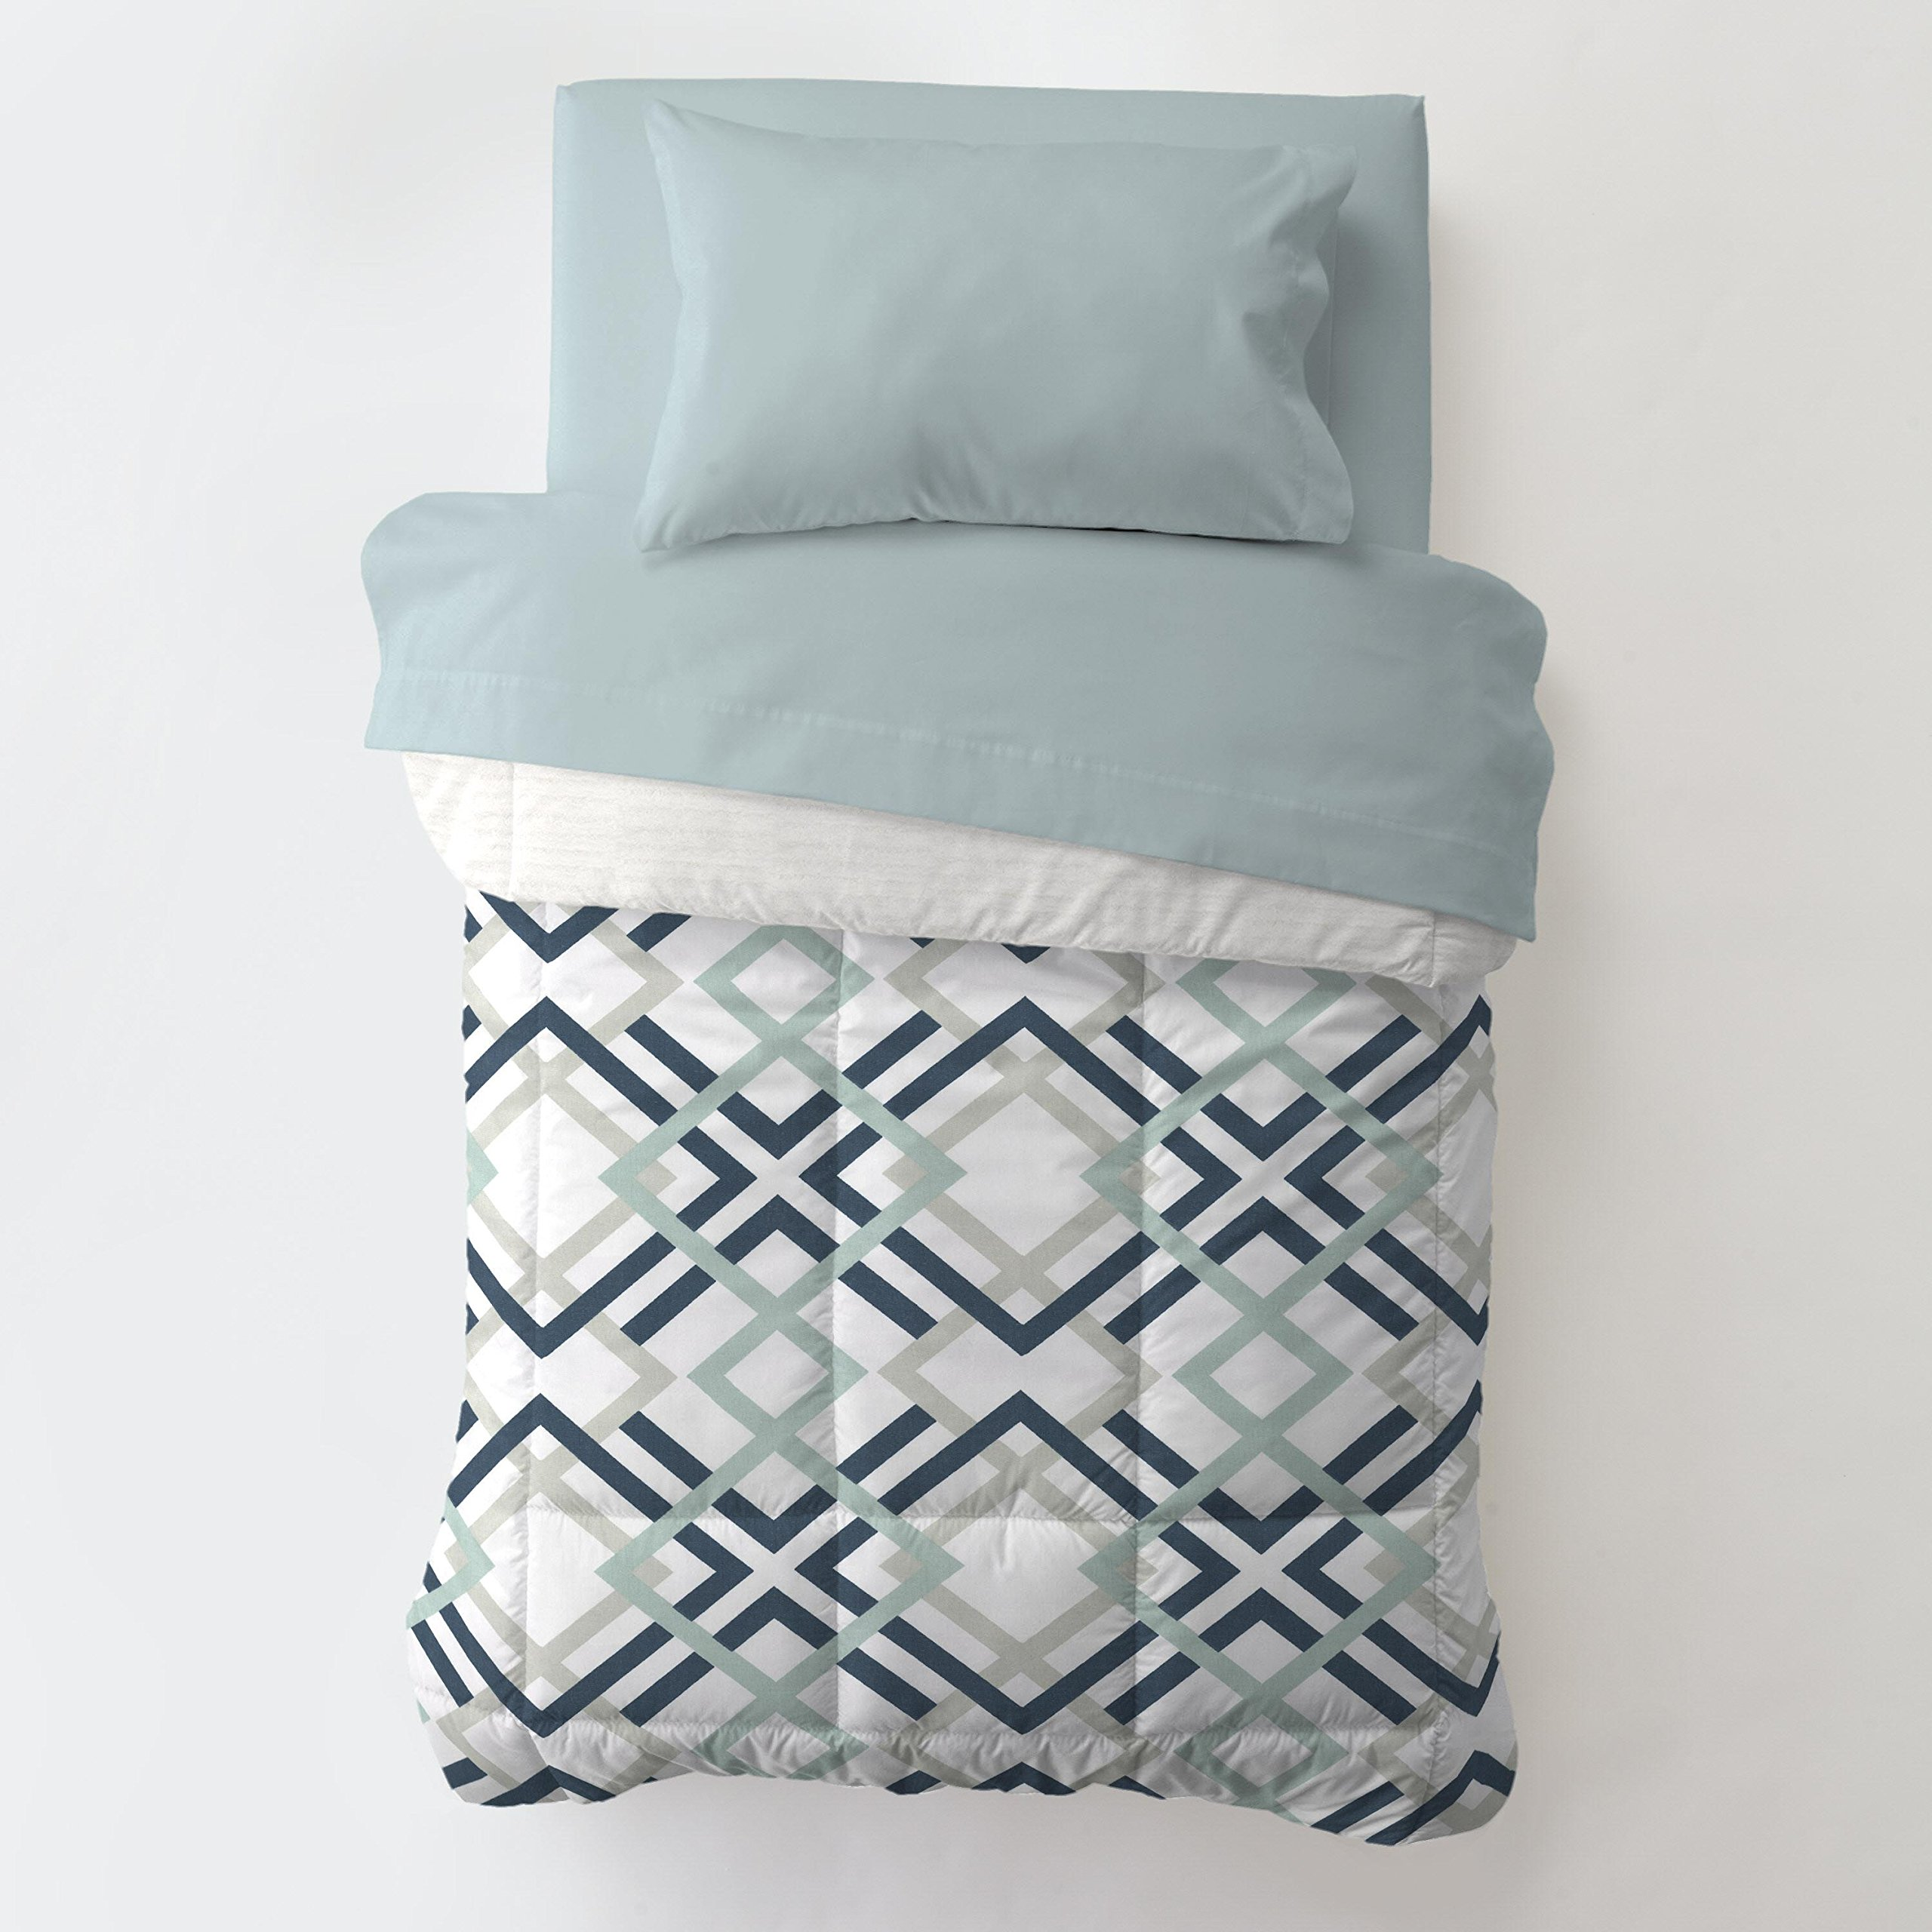 Carousel Designs Navy and Gray Geometric Toddler Bed Comforter by Carousel Designs